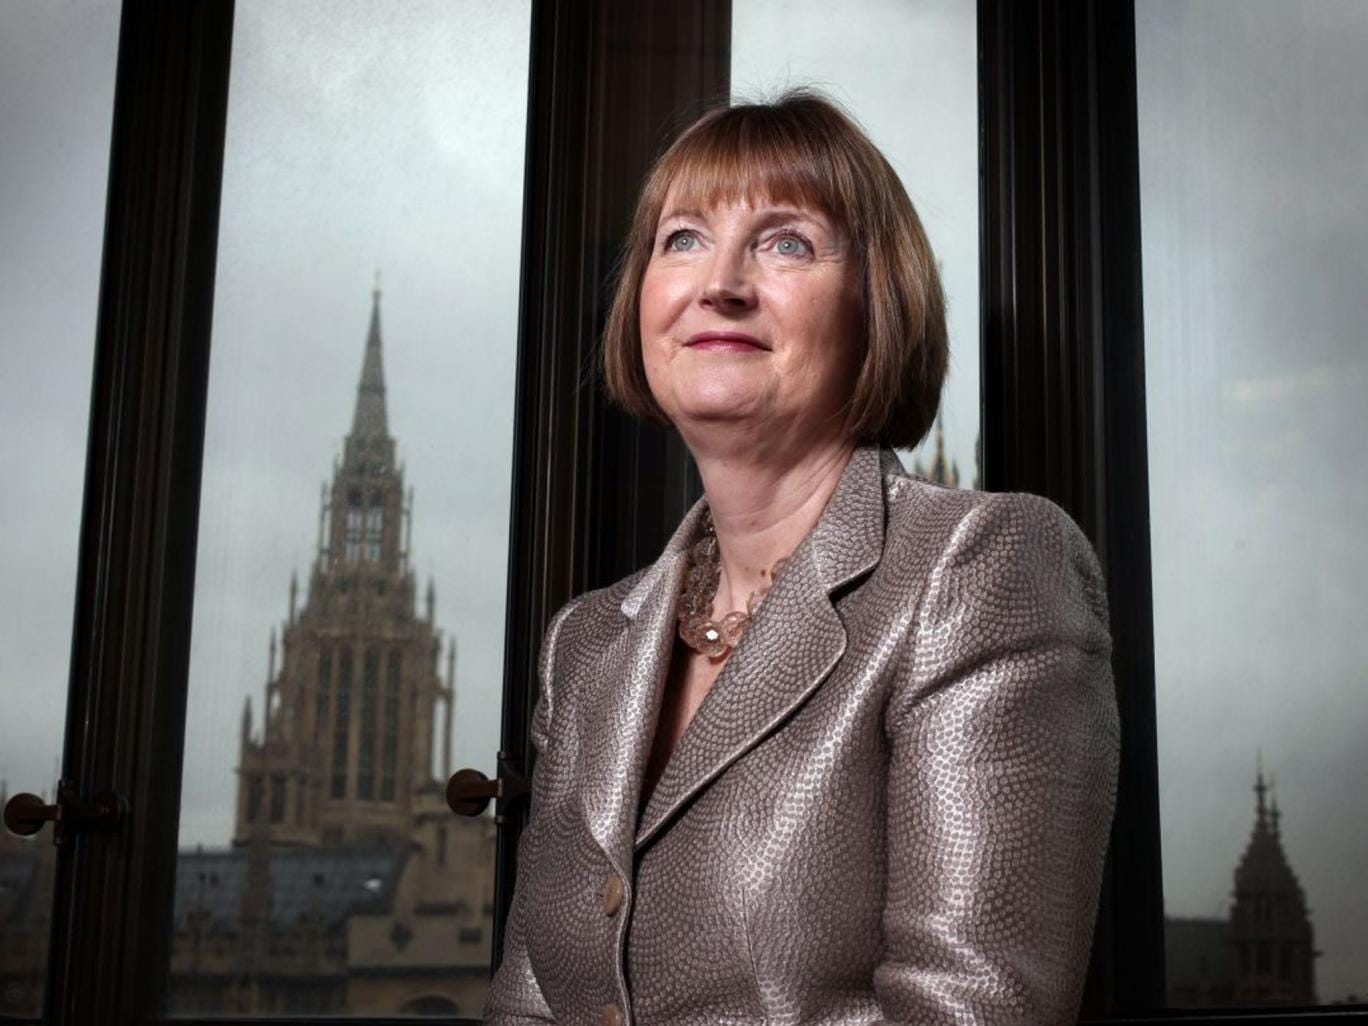 Harriet Harman, MP for Camberwell and Peckham, Deputy Leader of the Labour Party and shadow Secretary of State for Culture, Media and Sport, pictured at her office in Portcullis House in Westminster, London, February 17th, 2012